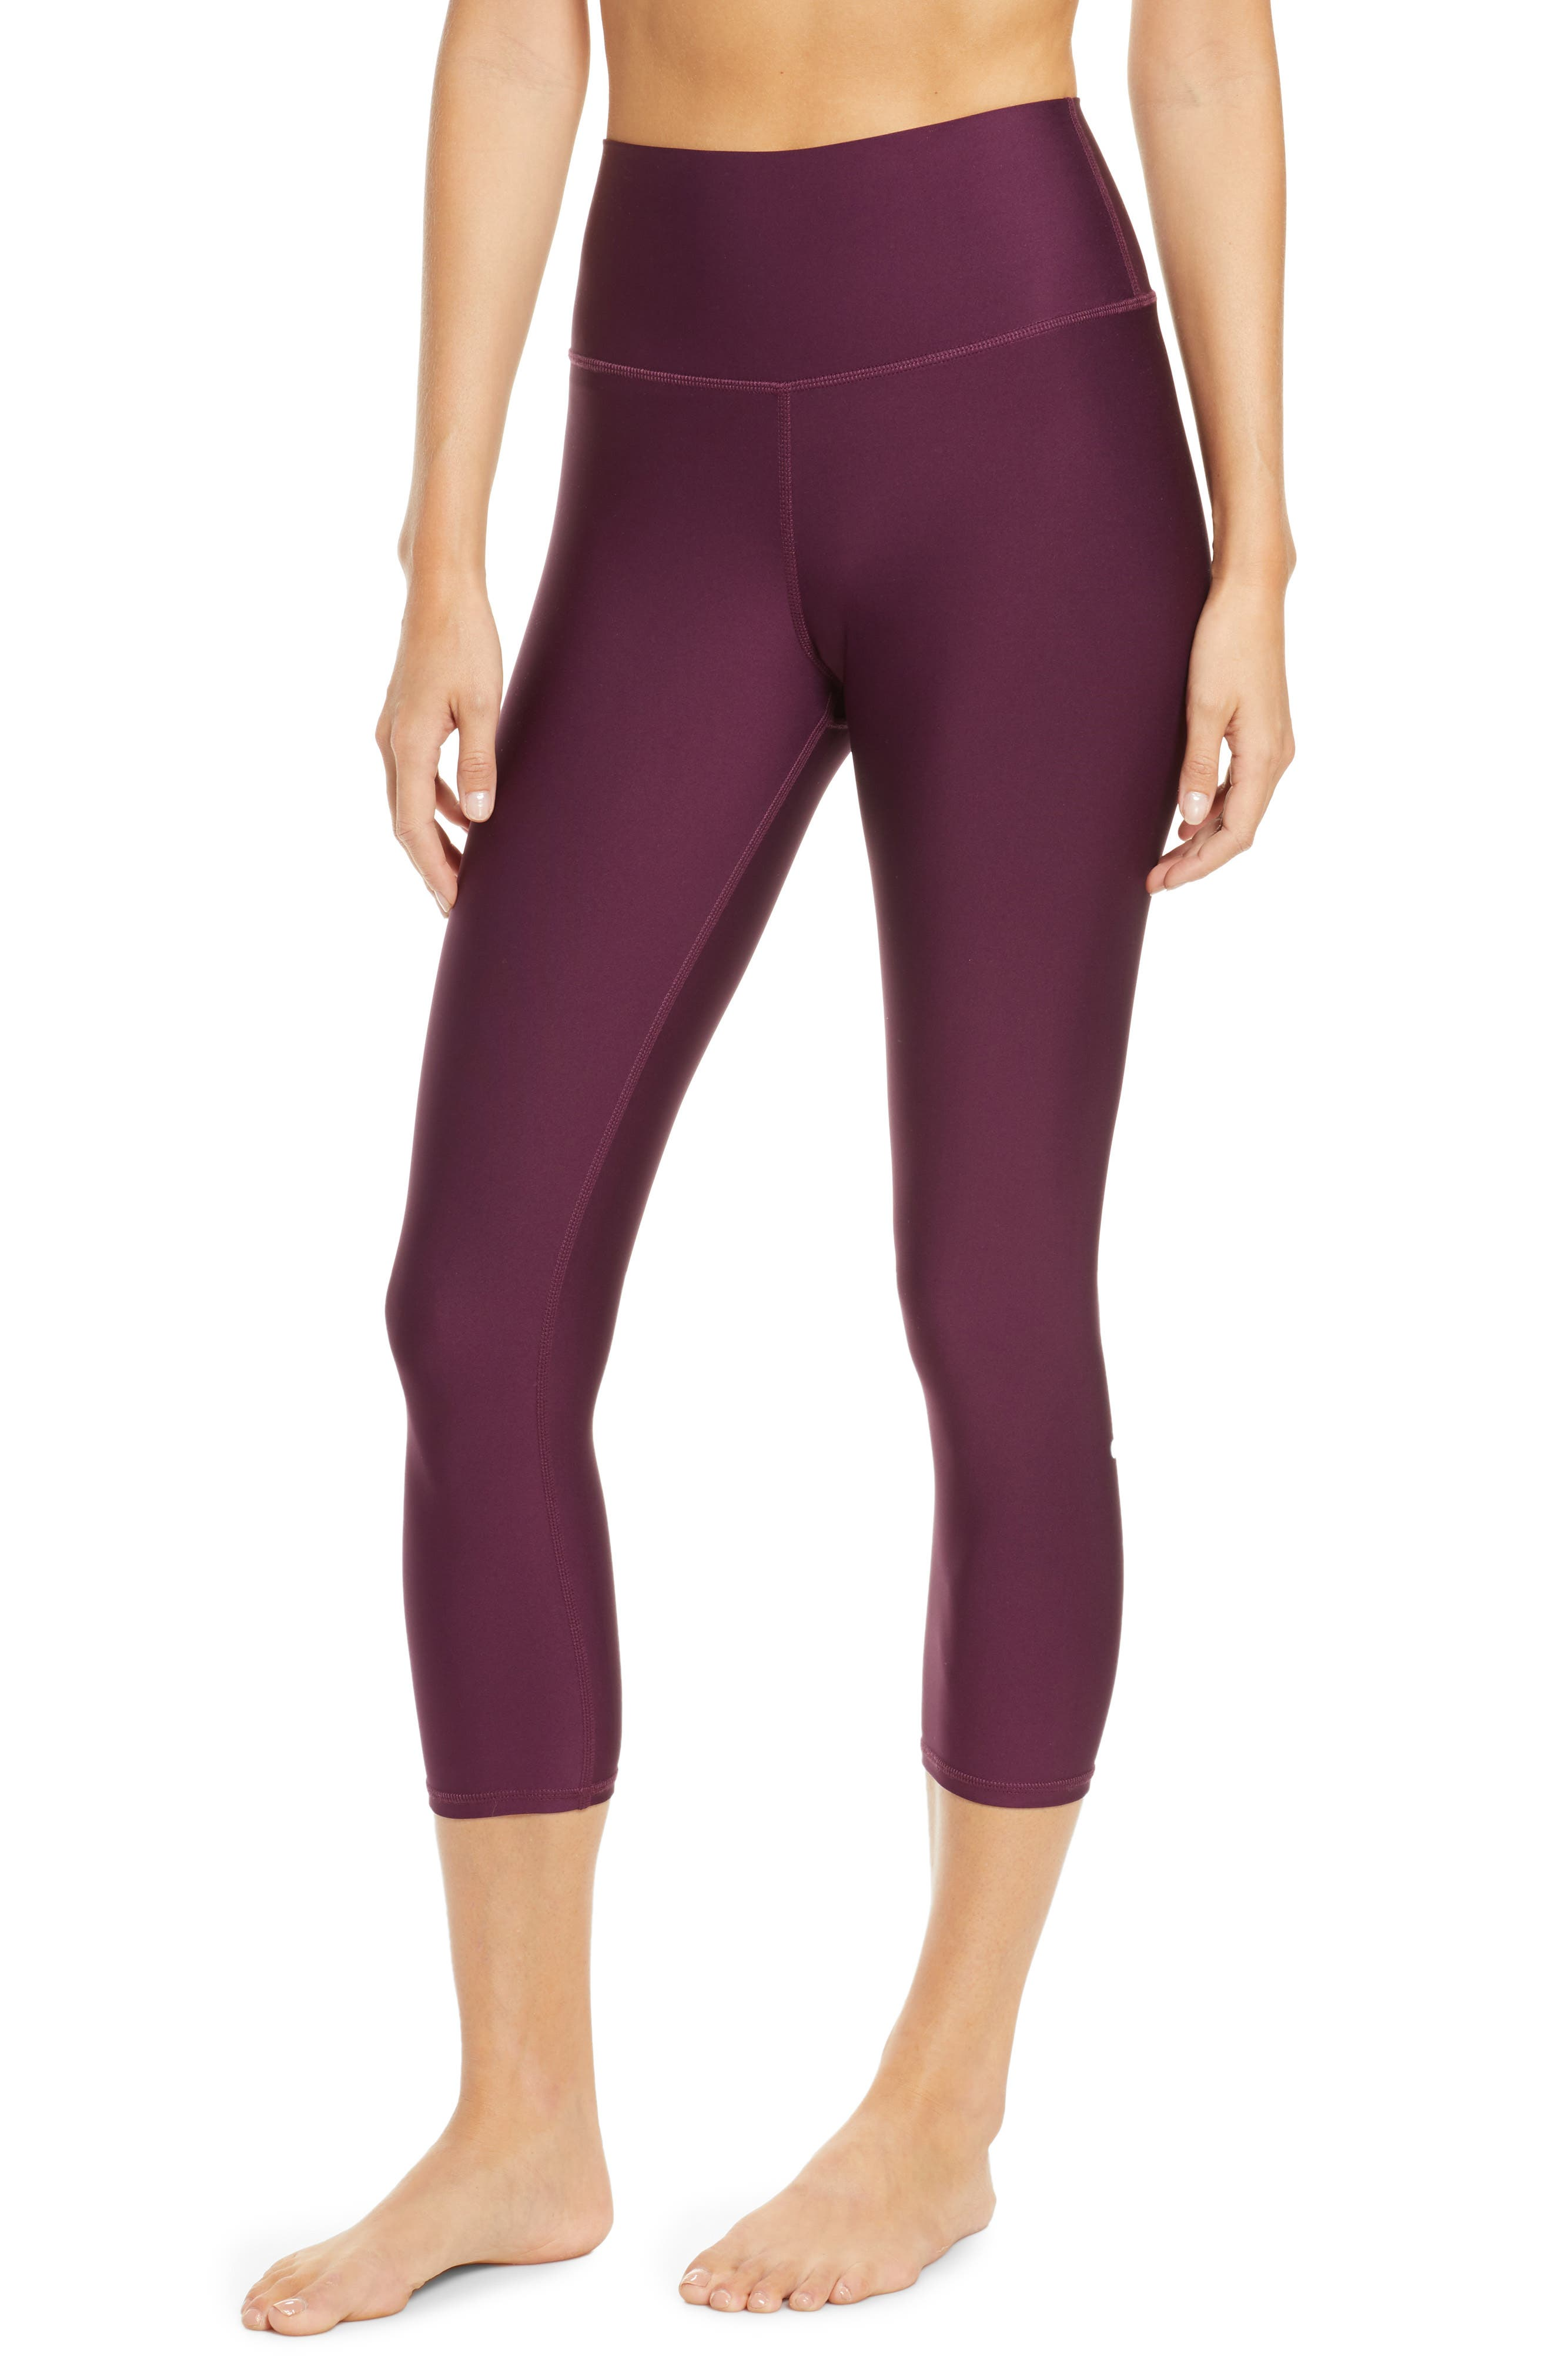 Women's Yoga And Barre Workout Clothes & Activewear | Nordstrom